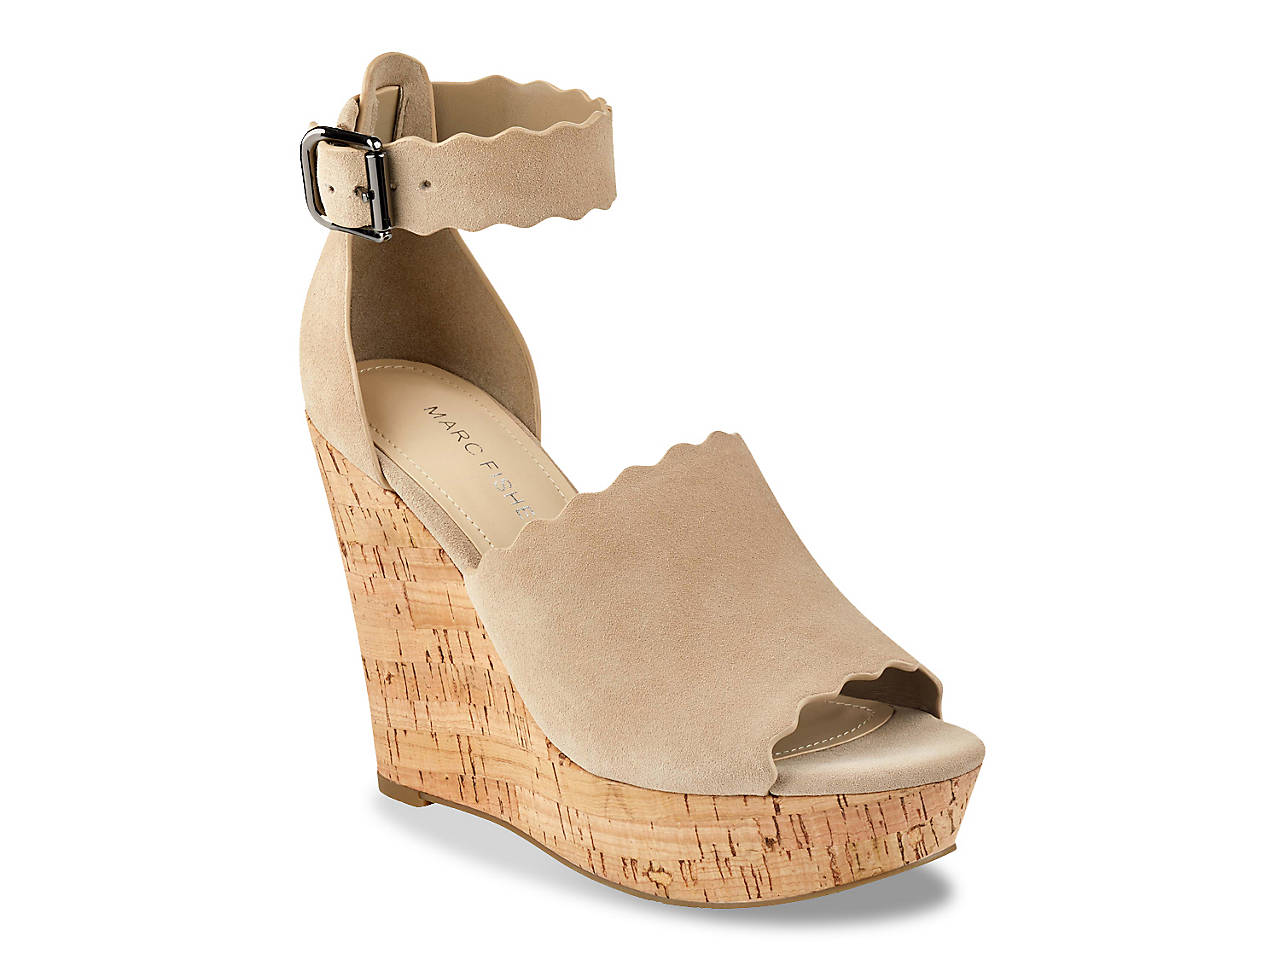 Hayo Wedge Sandal - Motherhood Charm